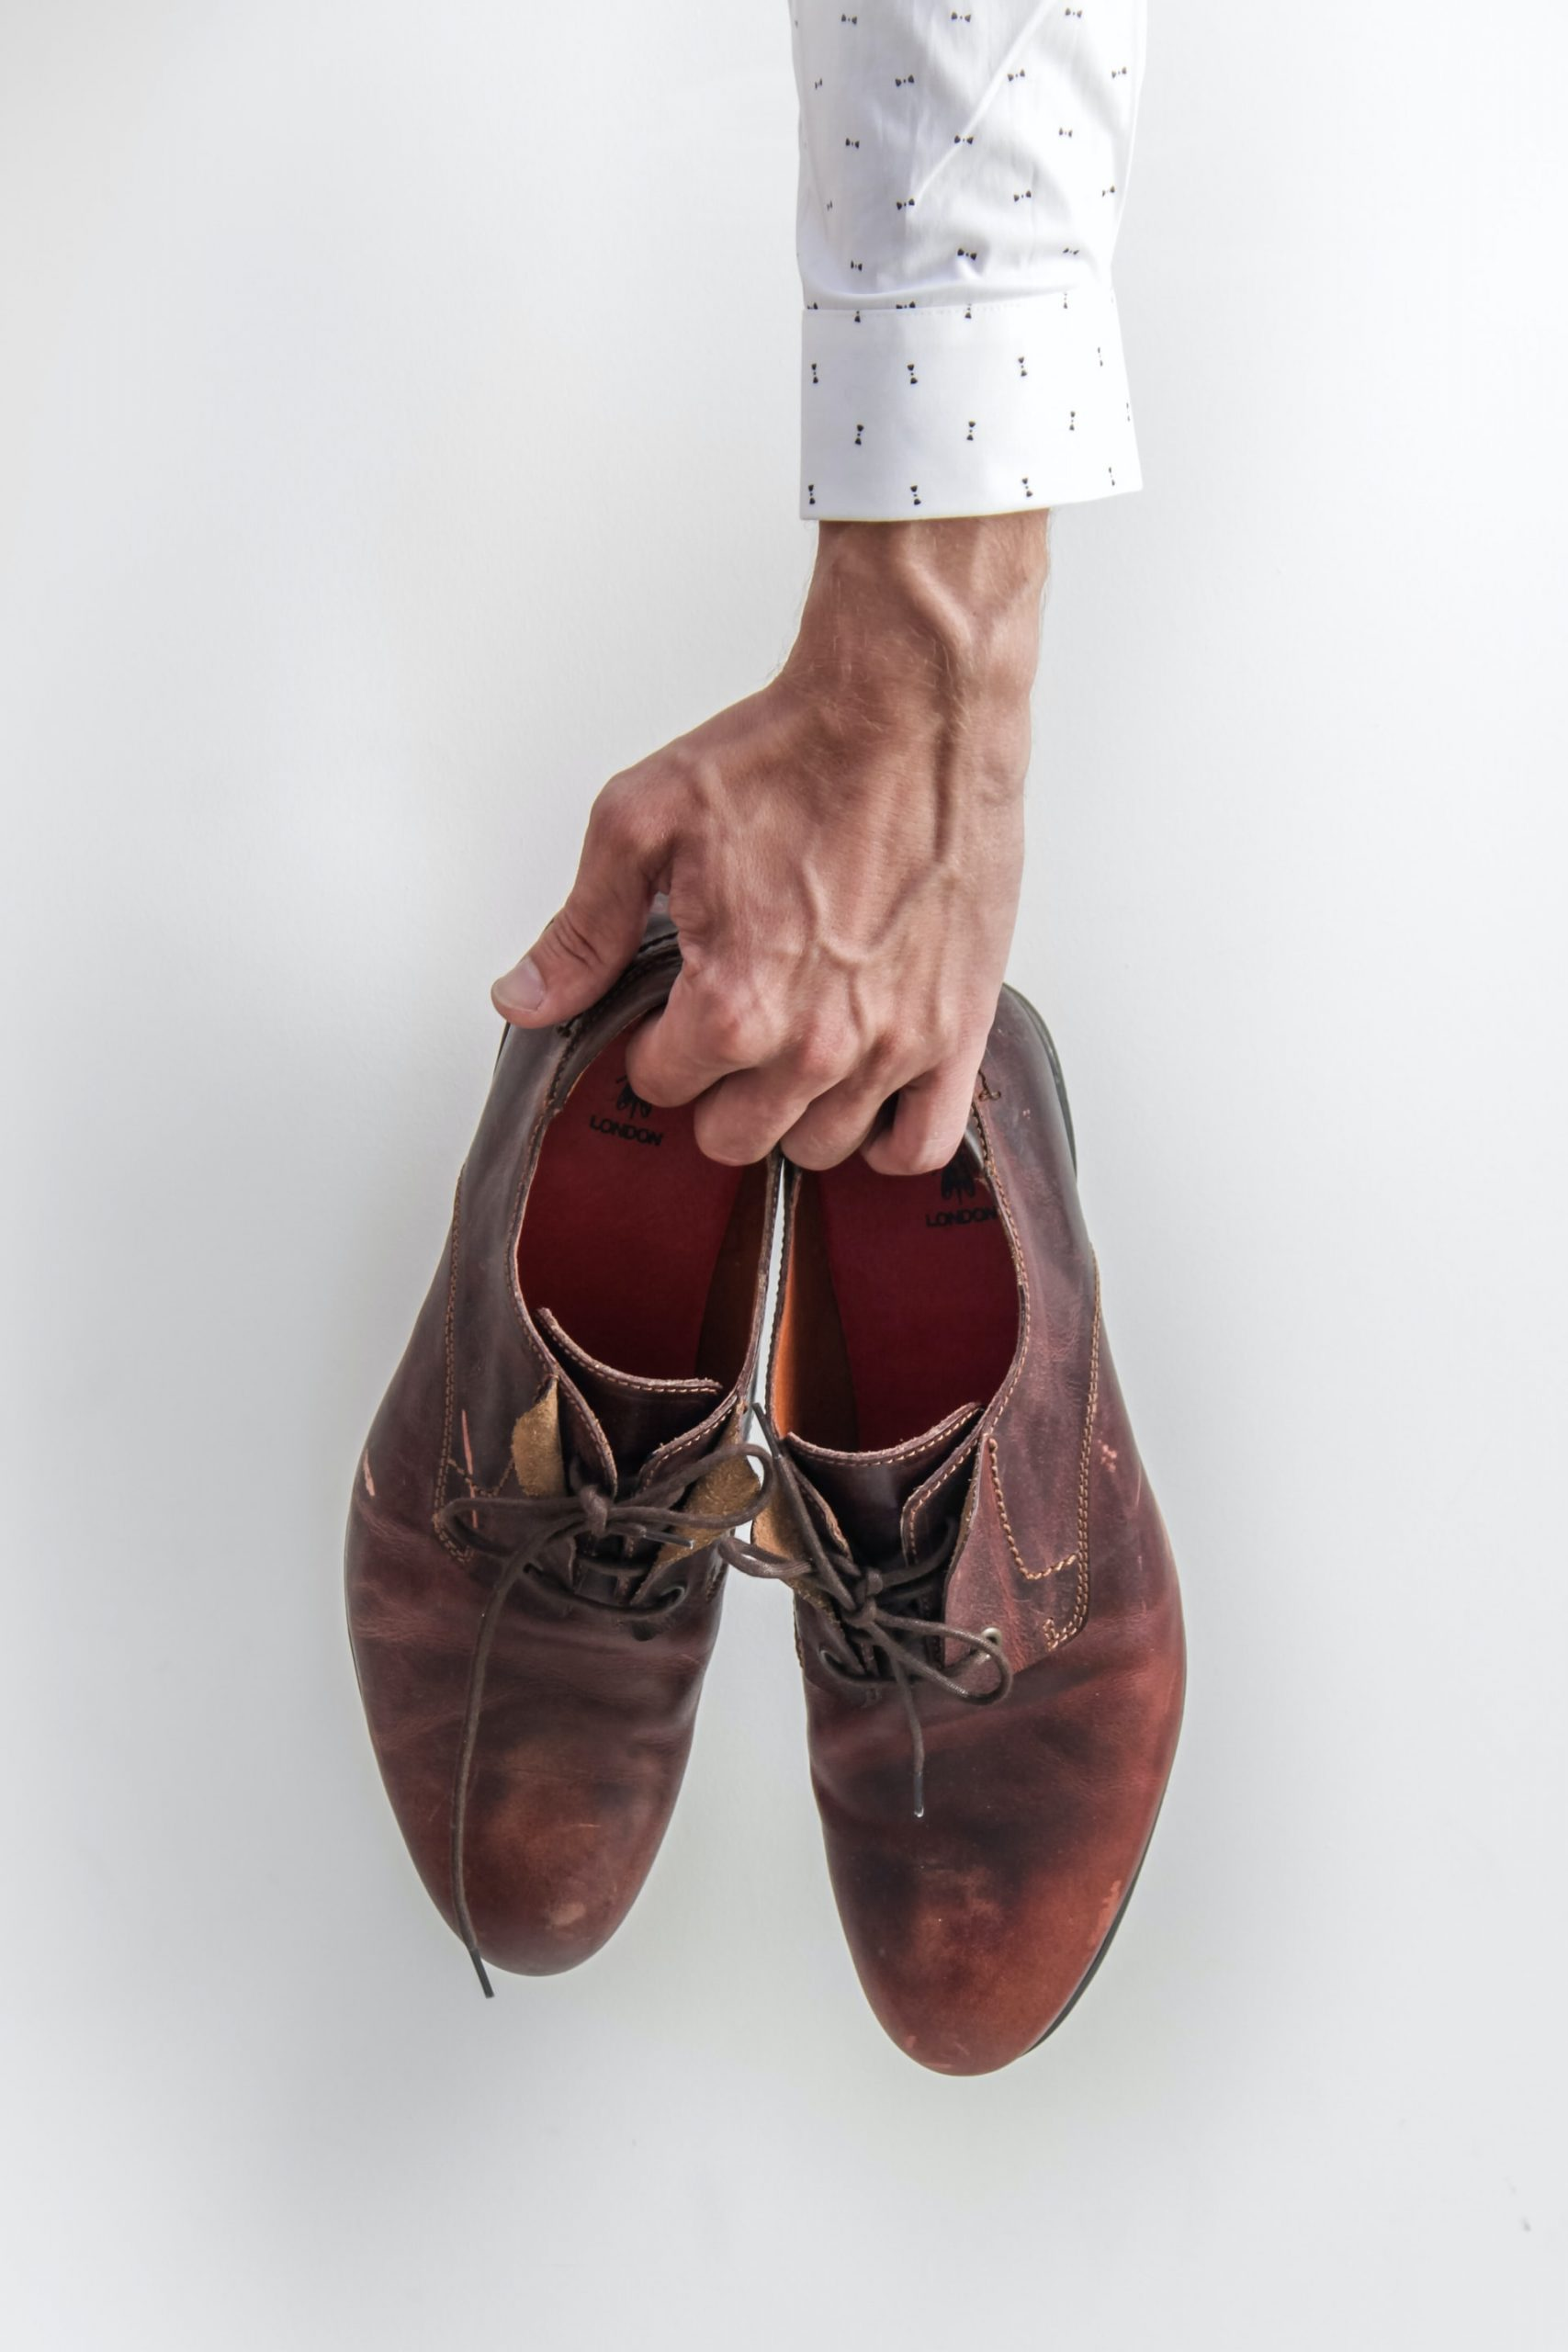 A person holding a pair of shoes.